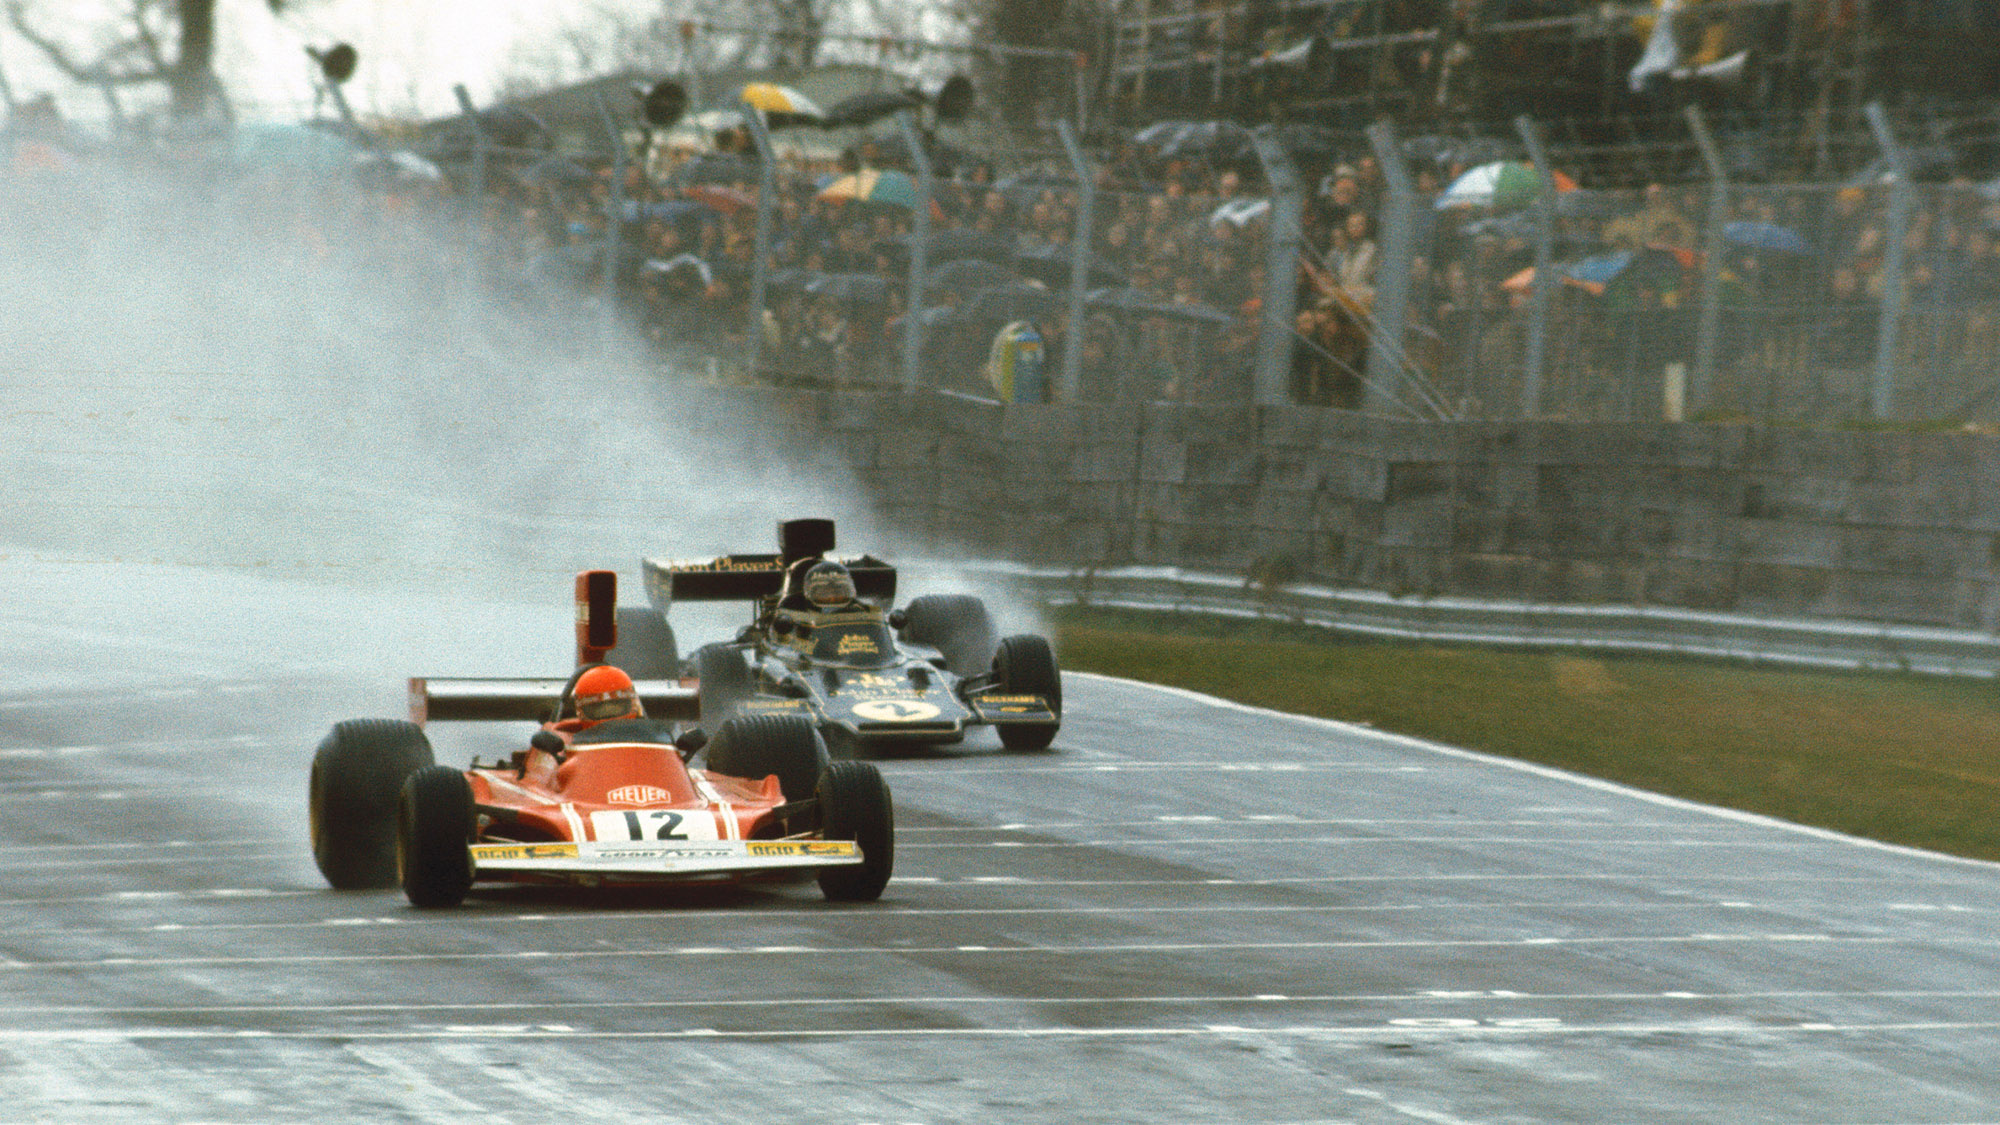 Jacky Ickx follows Nicki Lauda in the 1974 Race of Champions